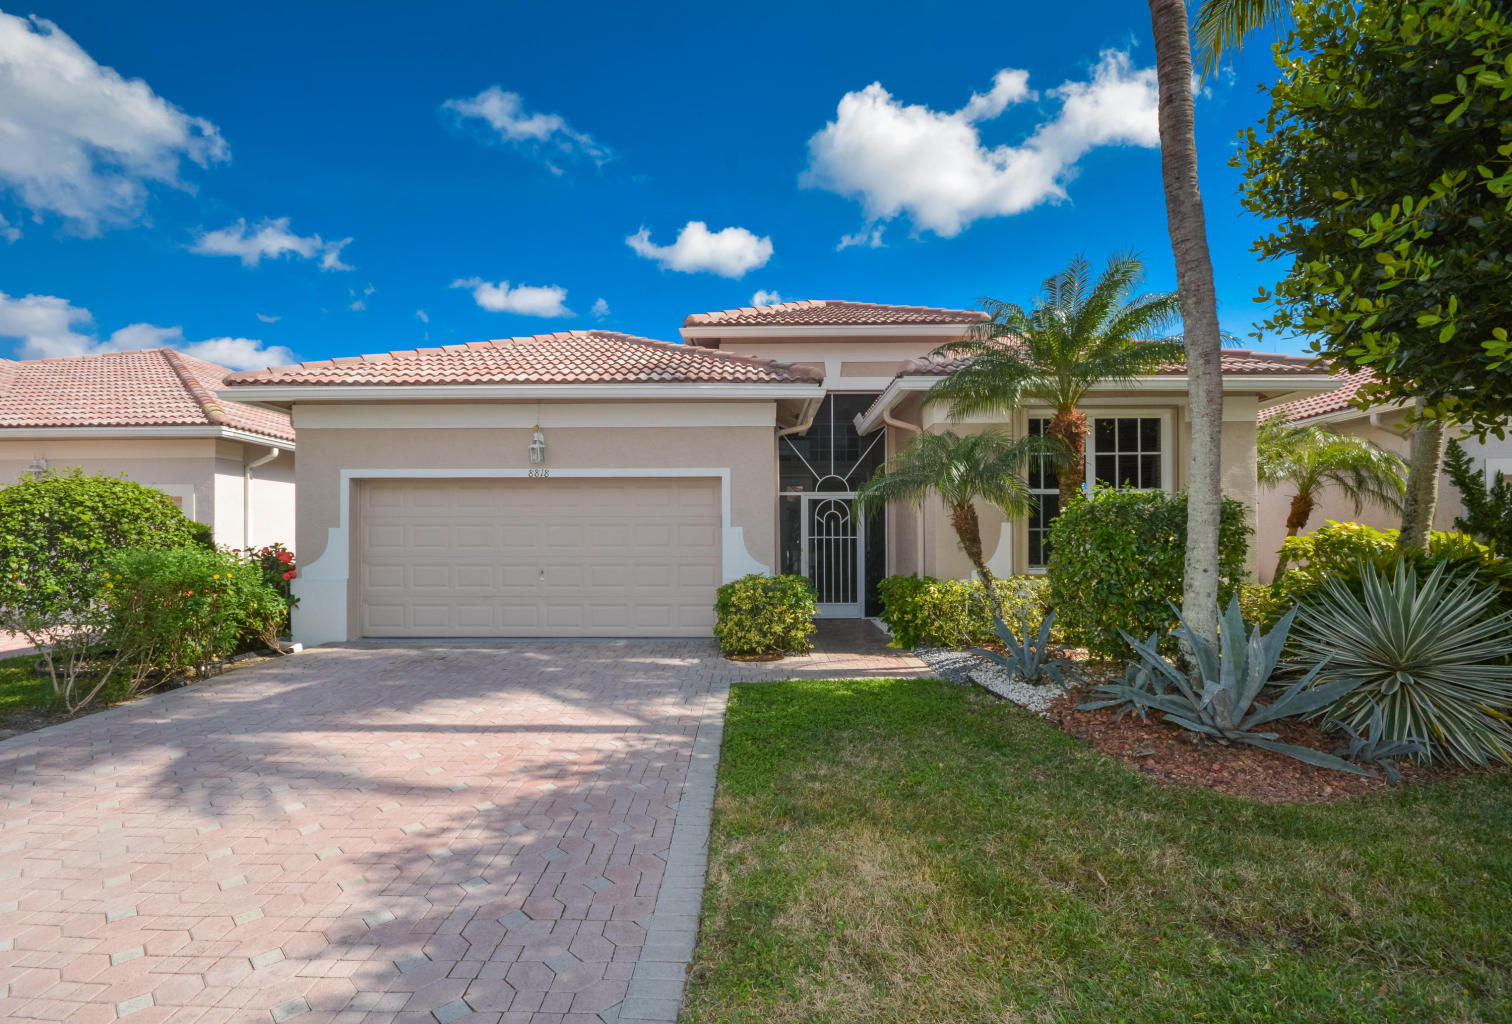 Aberdeen Boynton Beach Homes in Boynton Beach